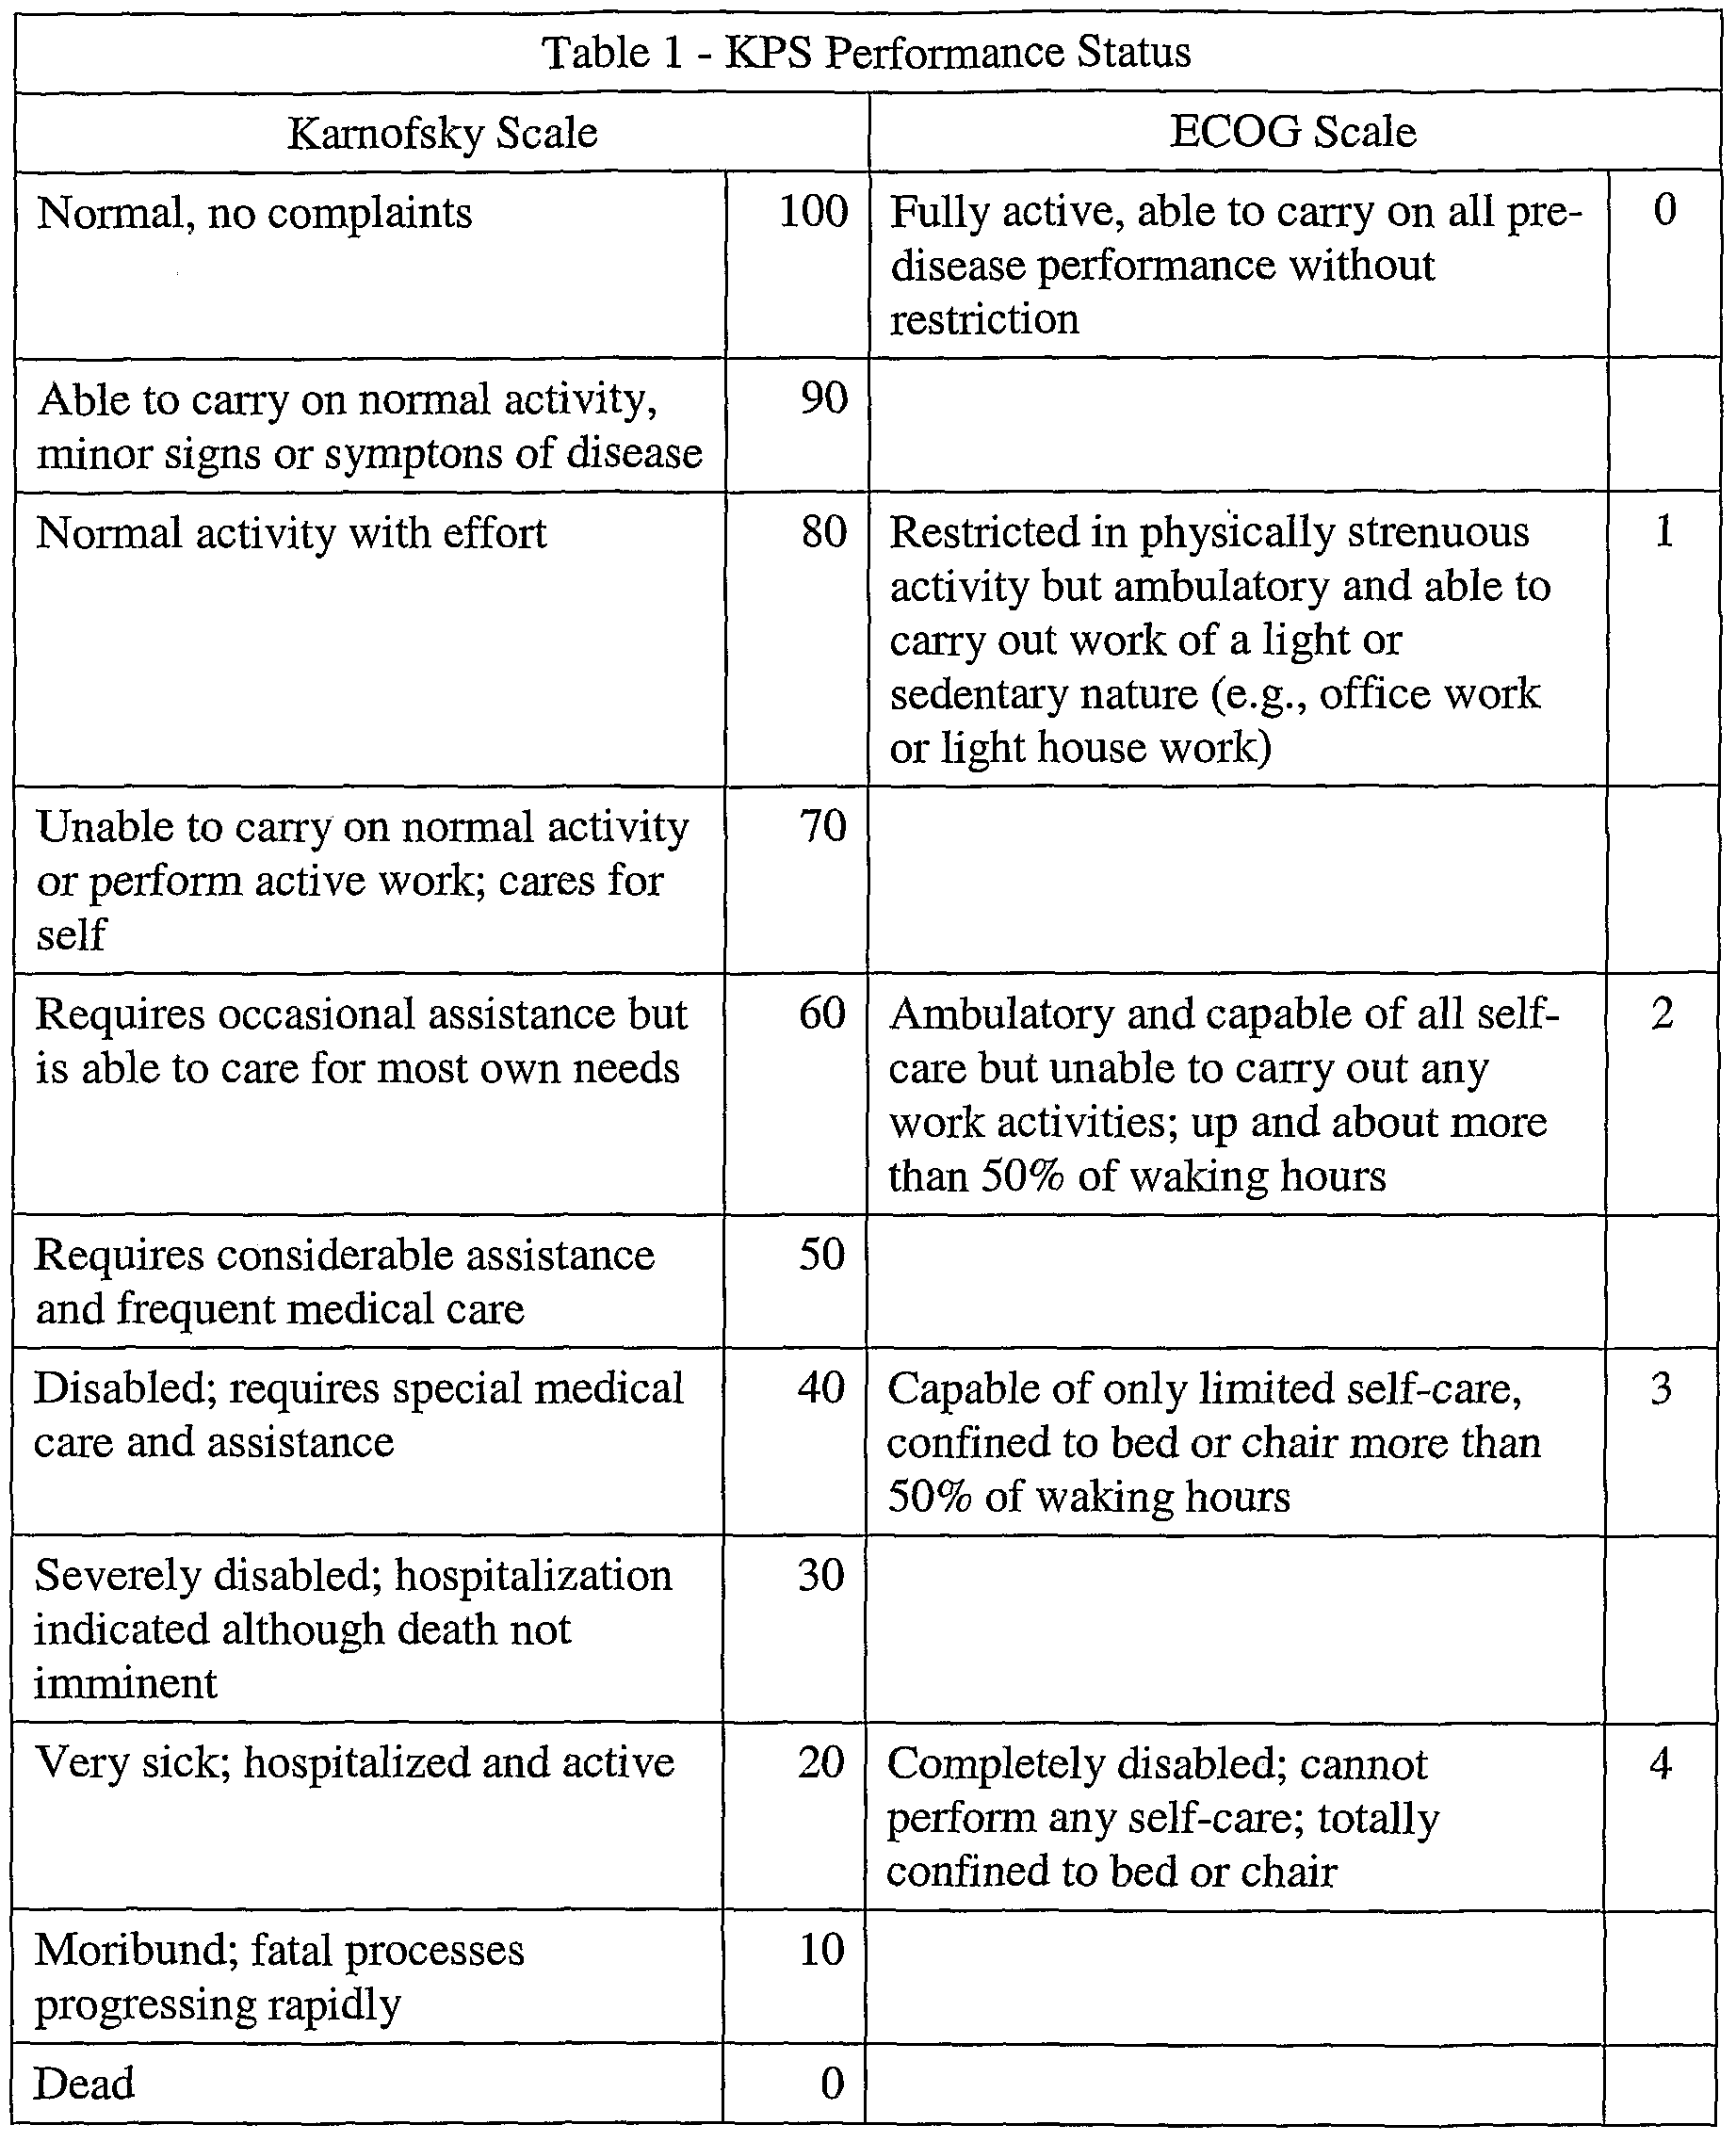 ecog and karnofsky table - Google Search | medical issues | Medical